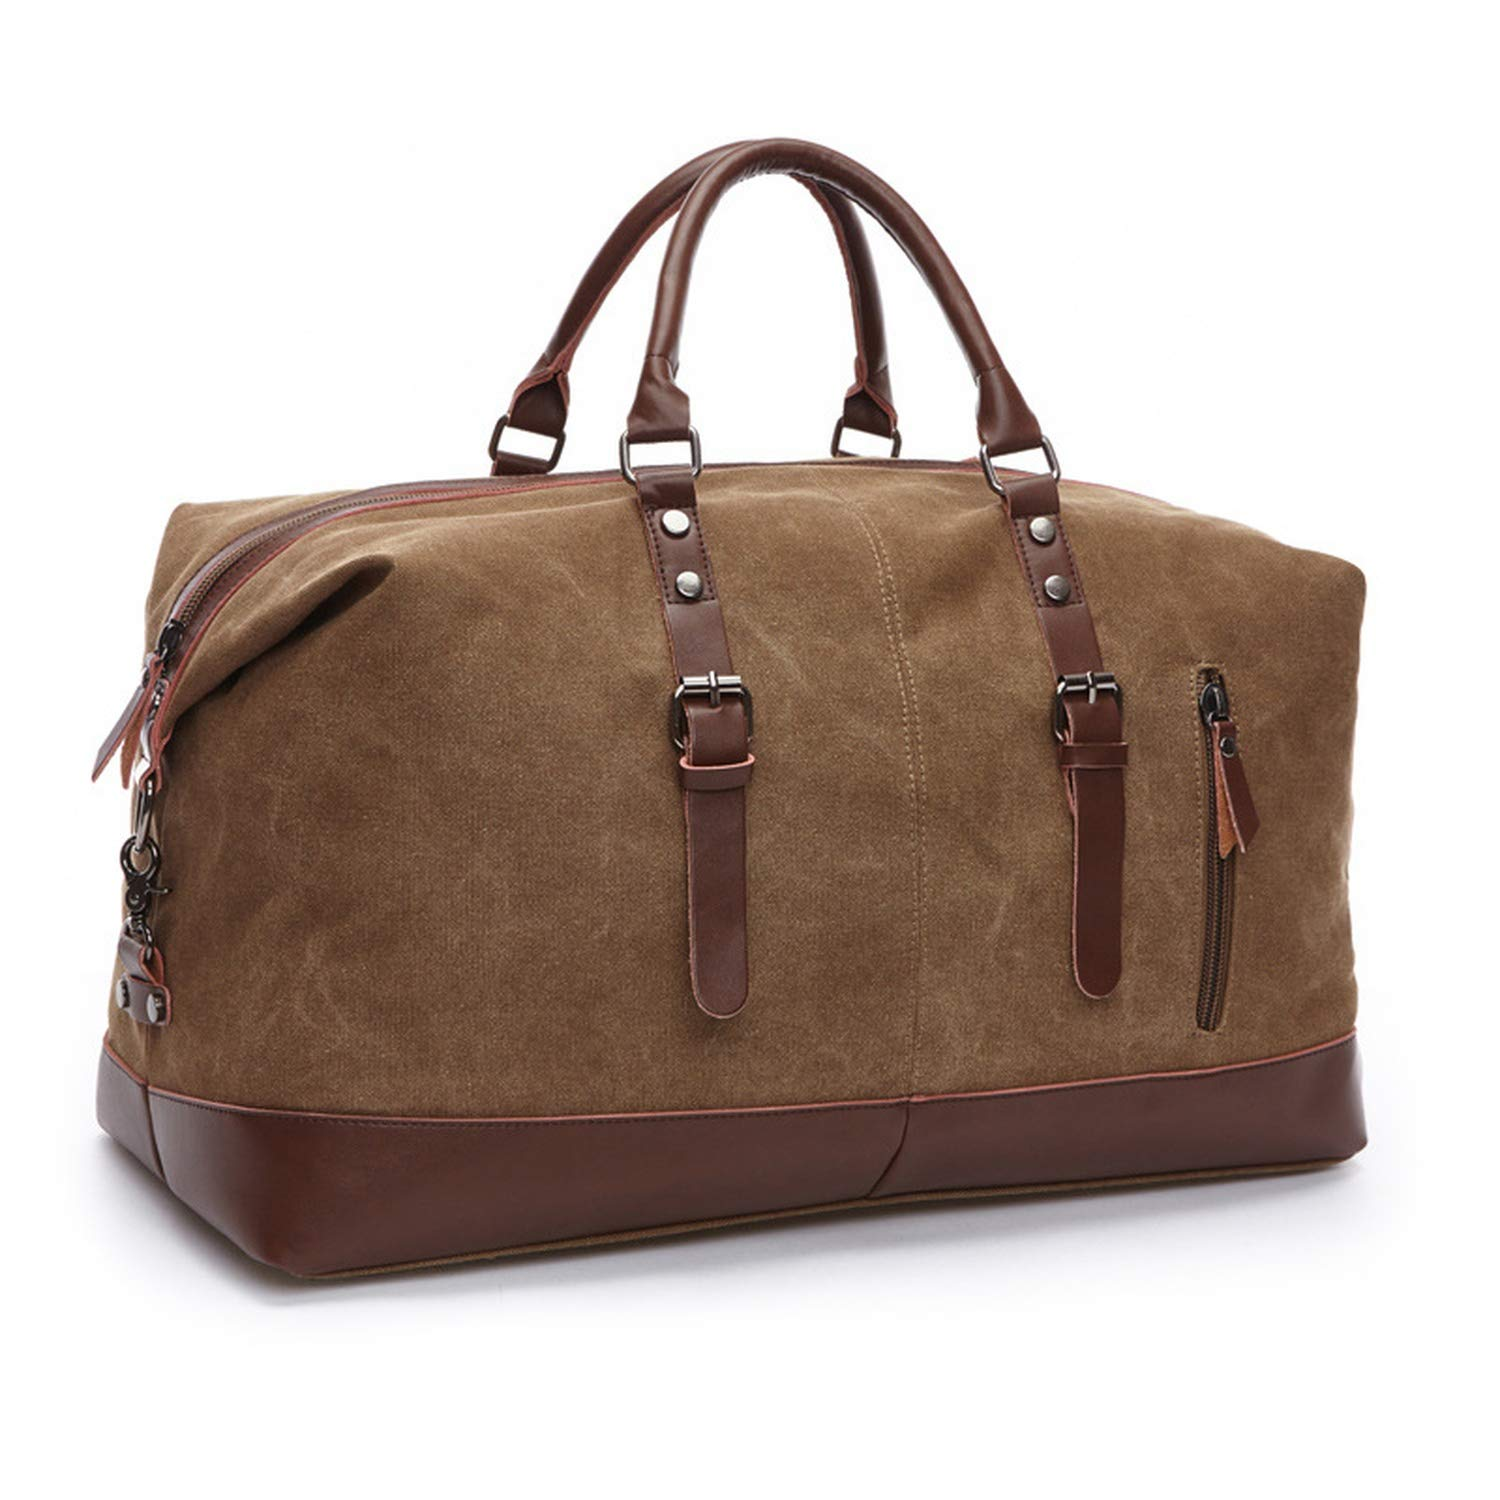 Canvas Leather Men Travel Bags Carry on Luggage Bags Handbag Travel Tote Large Bag Overnight,Green